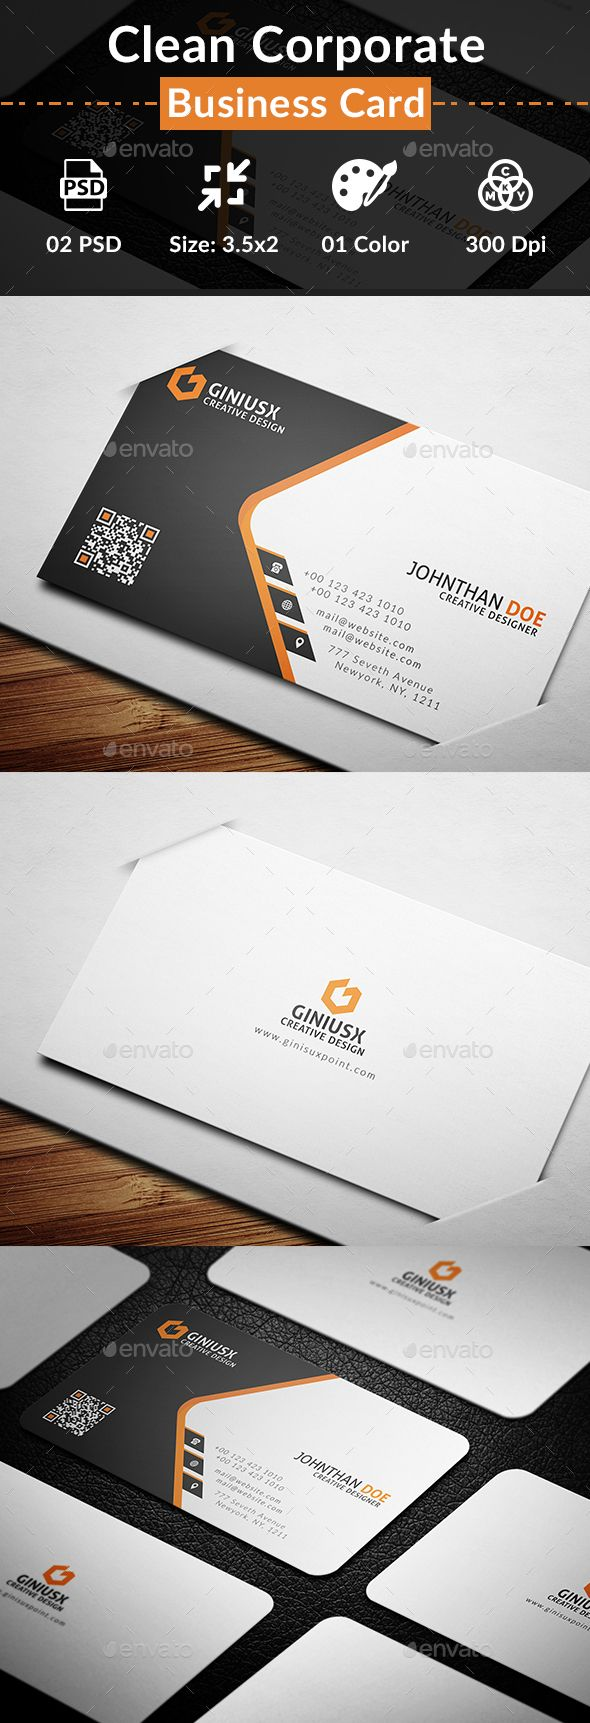 451 best Business Card Inspiration images on Pinterest | Plants ...